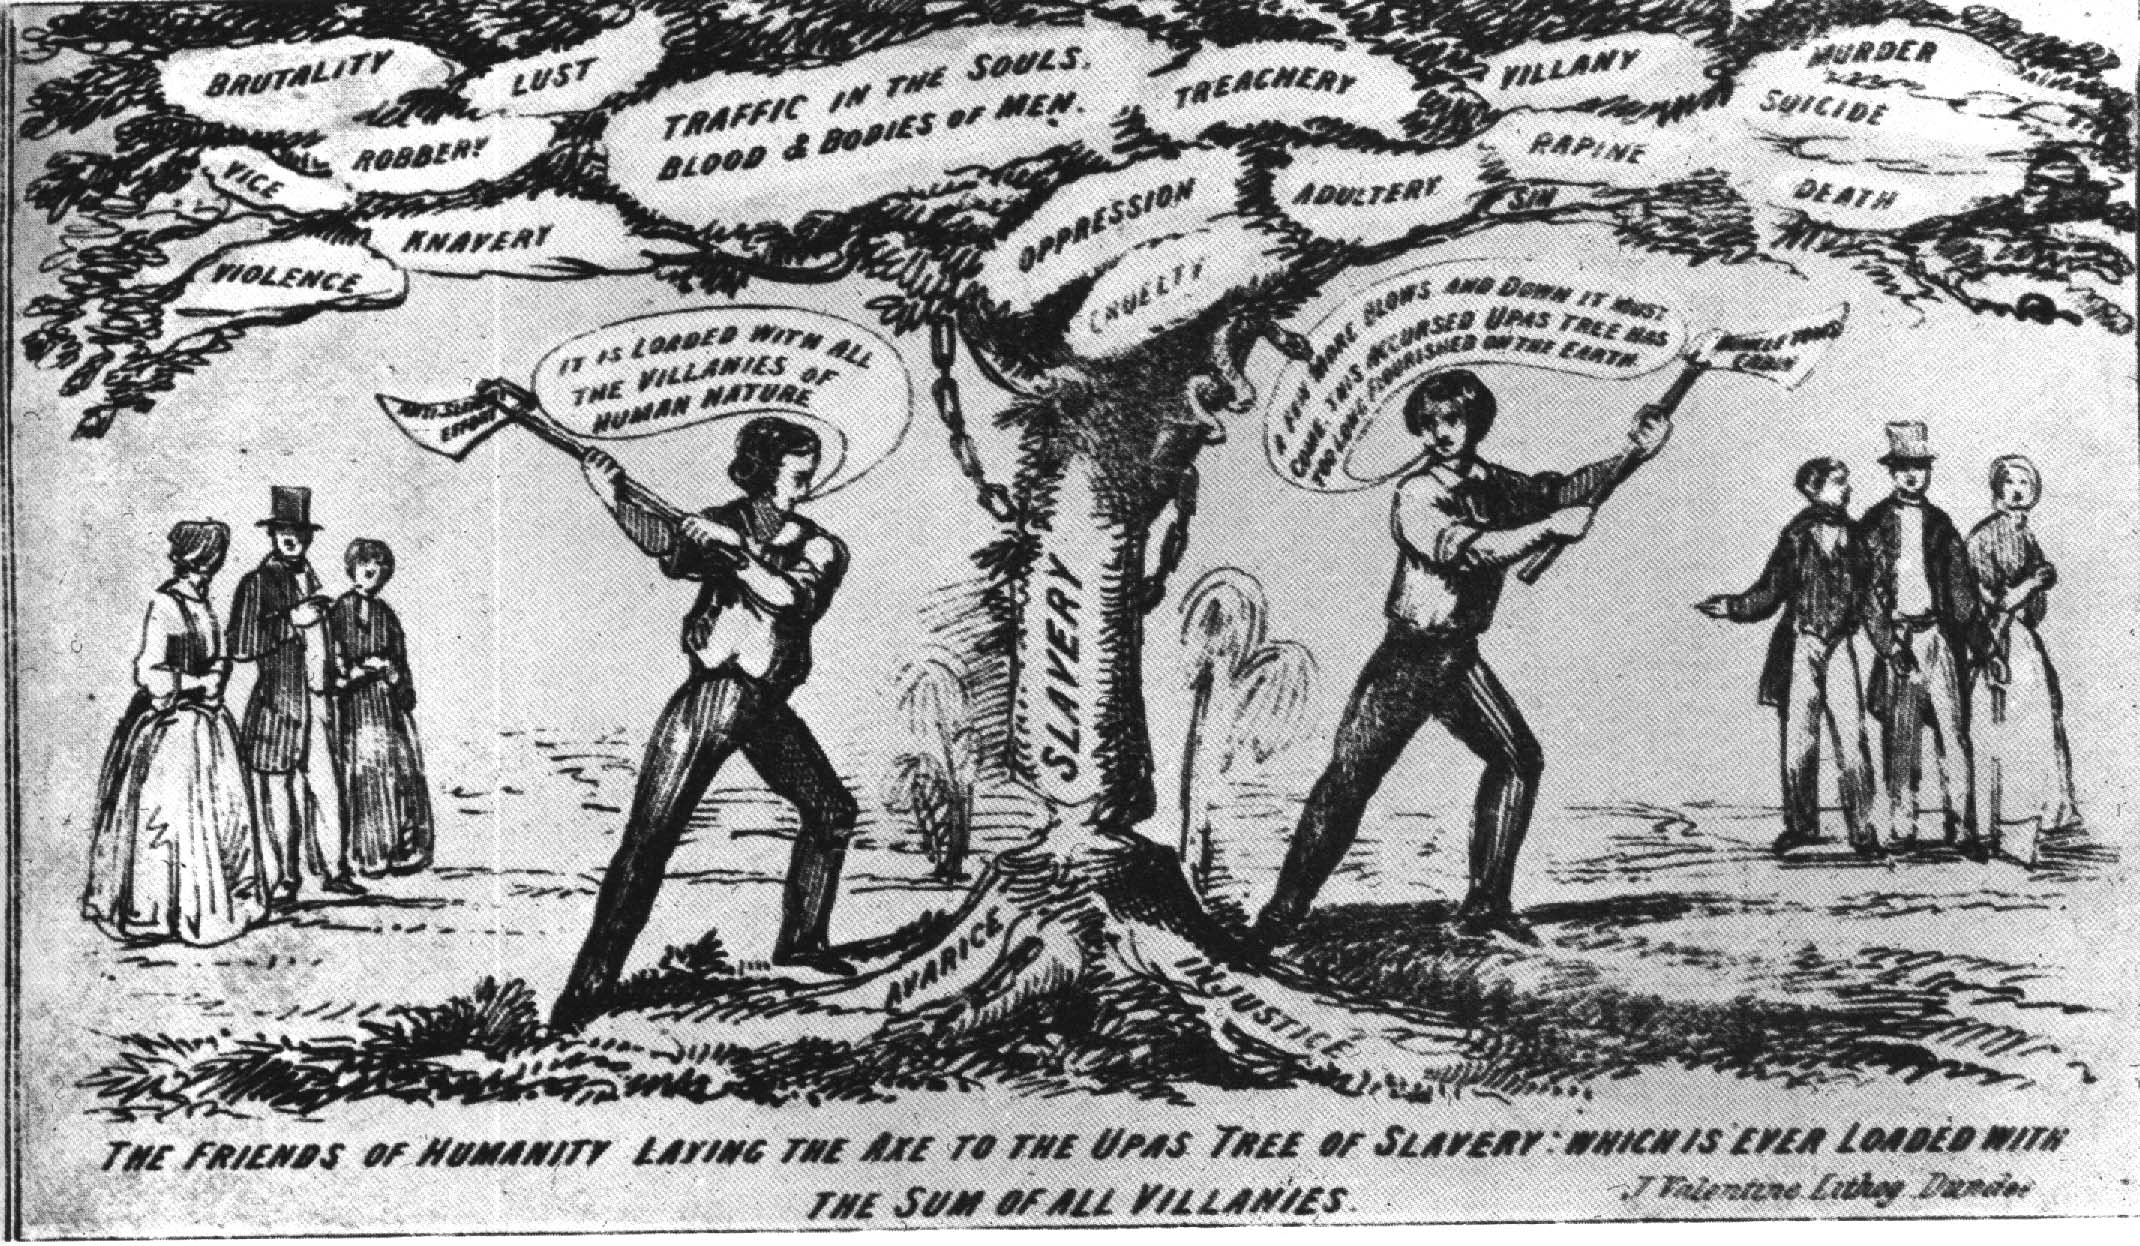 slavery and economy Plantation slavery and economic development in the antebellum southern united states charles post the relationship of plantation slavery in the americas to economic and social development in the regions it was dominant has long been a subject of scholarly debate the existing literature is divided into two broad.